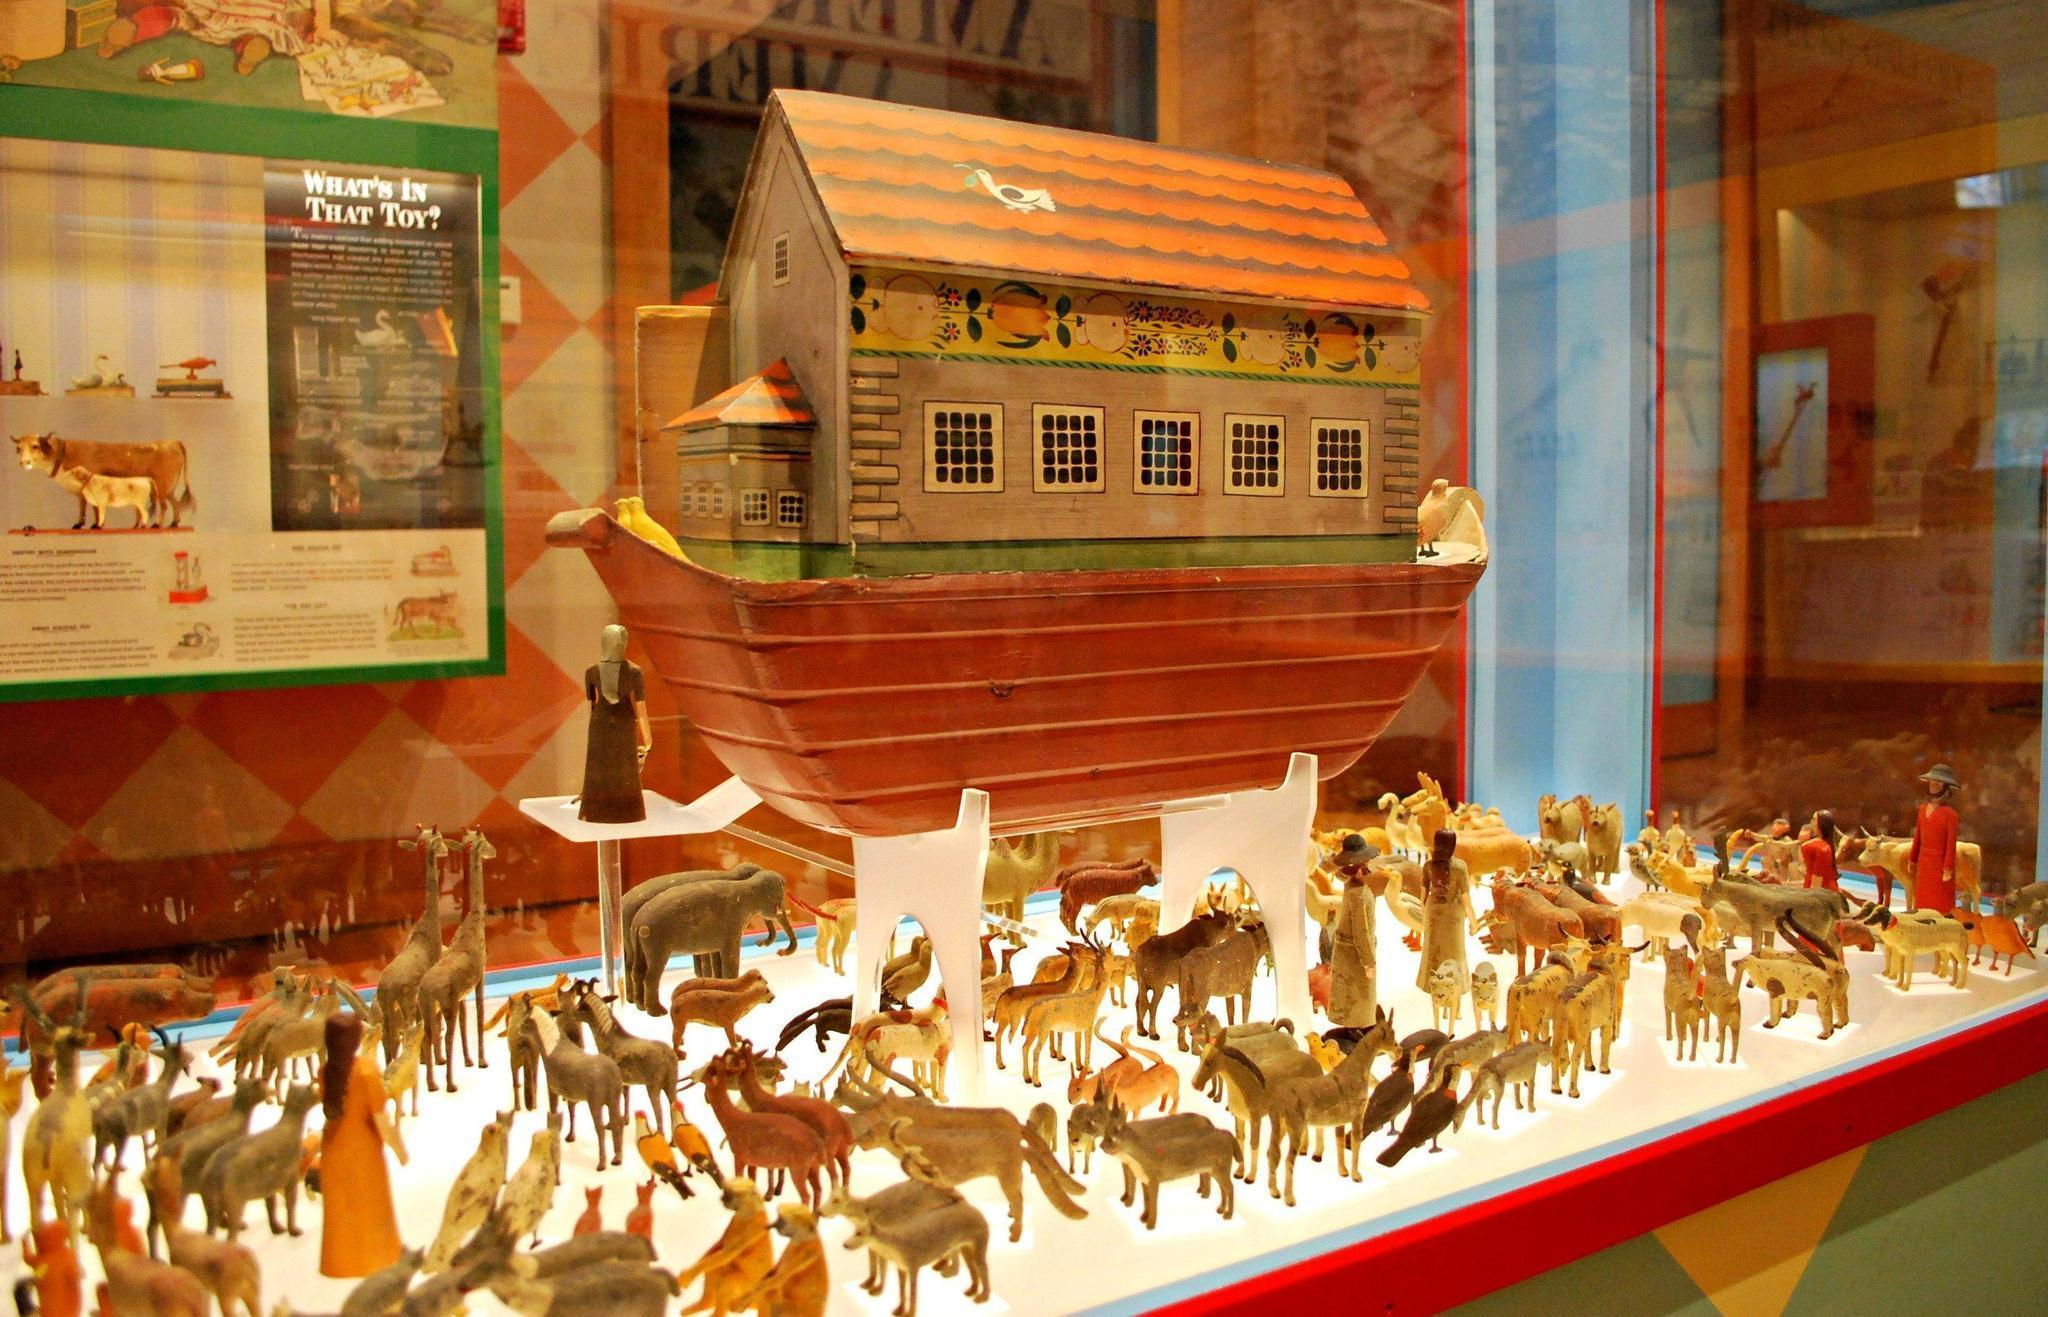 Historic toys tell a different story at Art Museums The Virginia